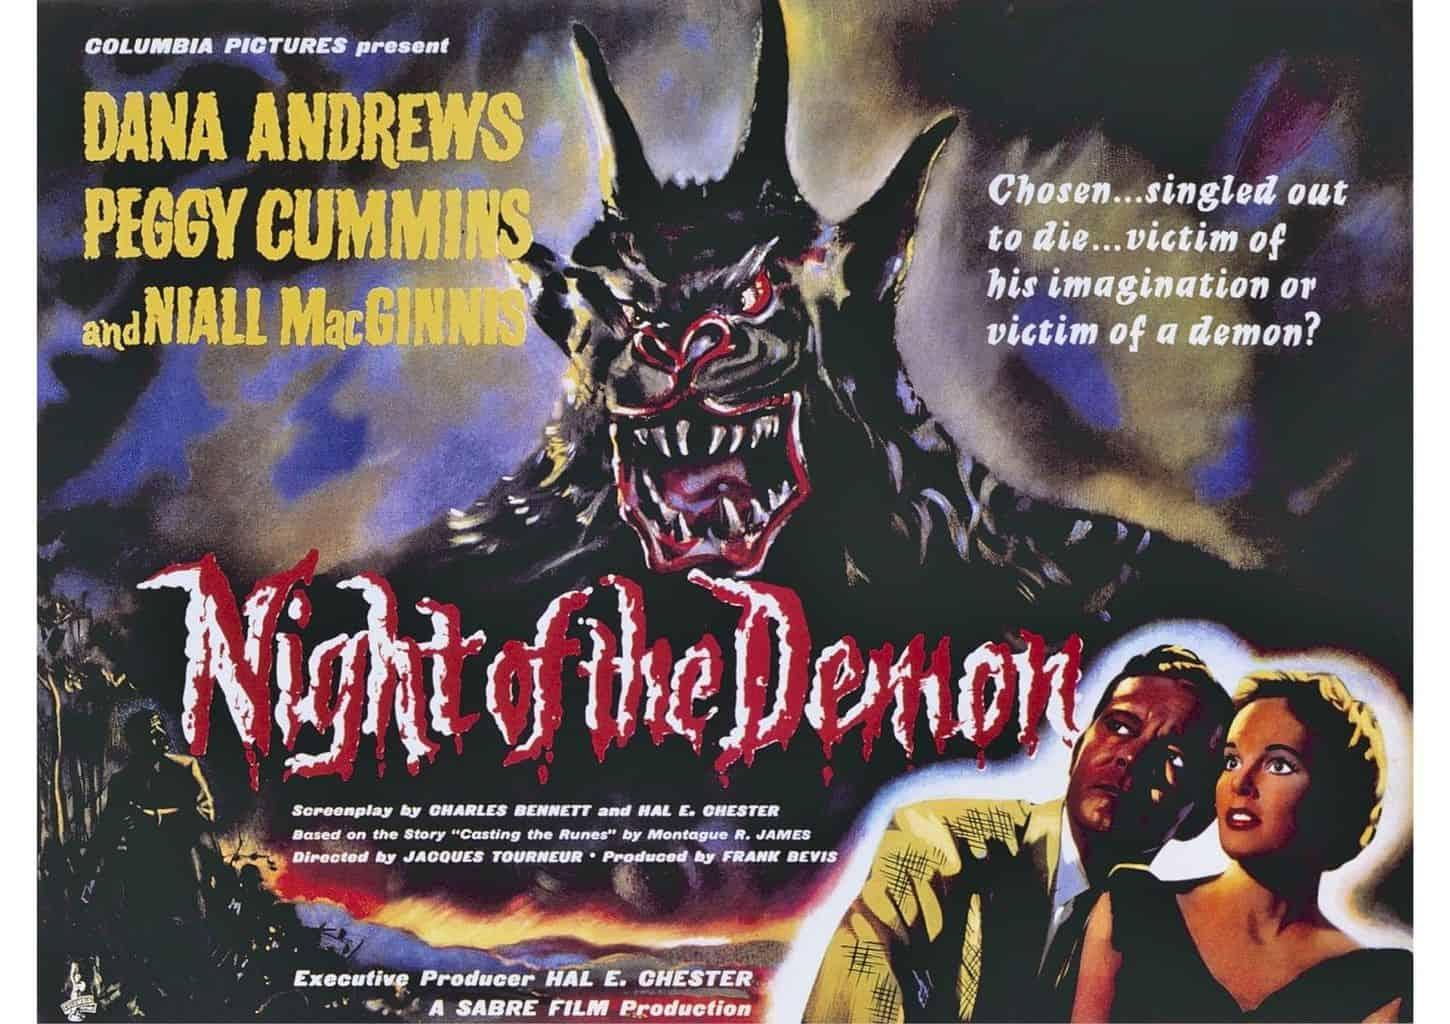 Poster for Jacques Tourneur's 1957 horror 'Night of the Demon'